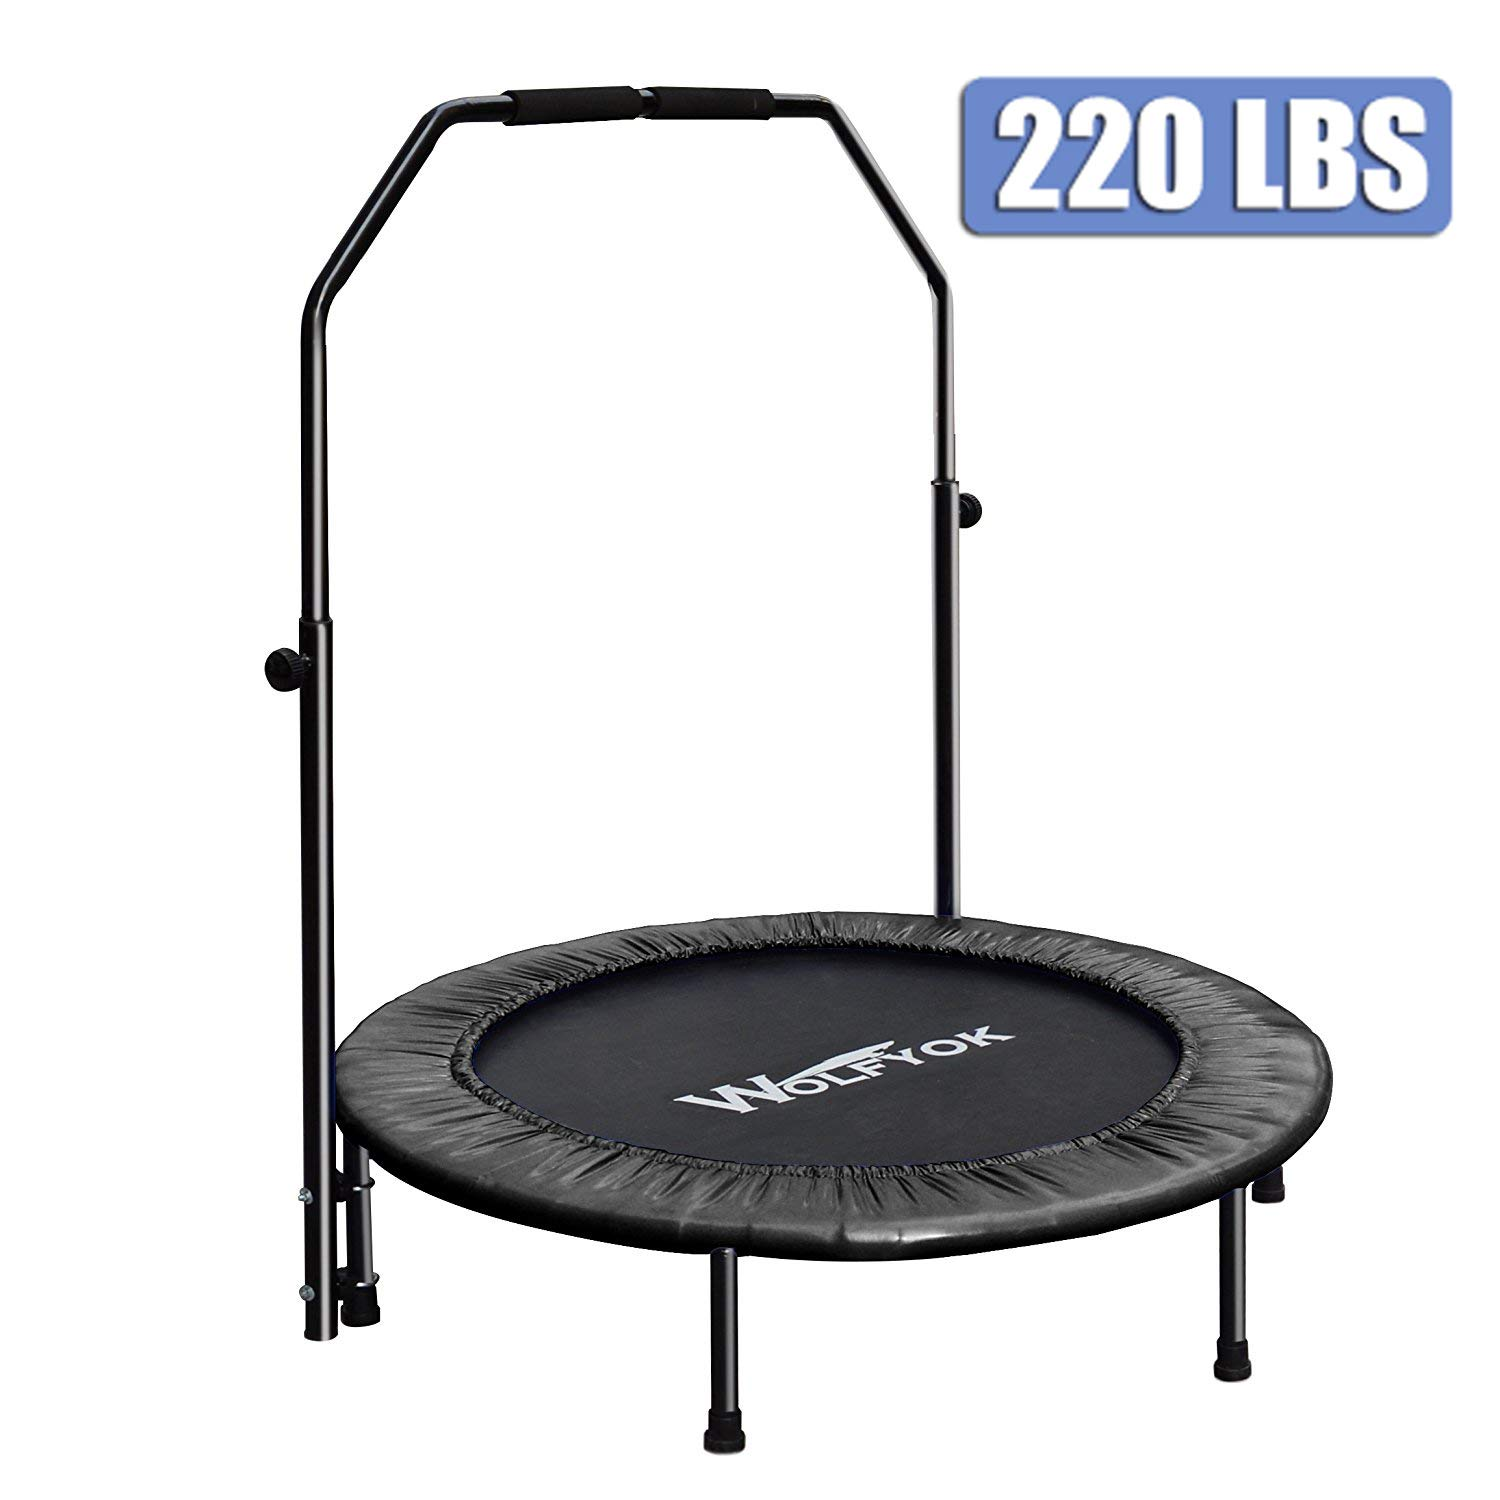 Wolfyok Exercise Trampoline with Safety Pad Adjustable Handle Bar Portable & Foldable Rebounder for Adults Kids Body Fitness Training Workout Max Load 220 lbs Black